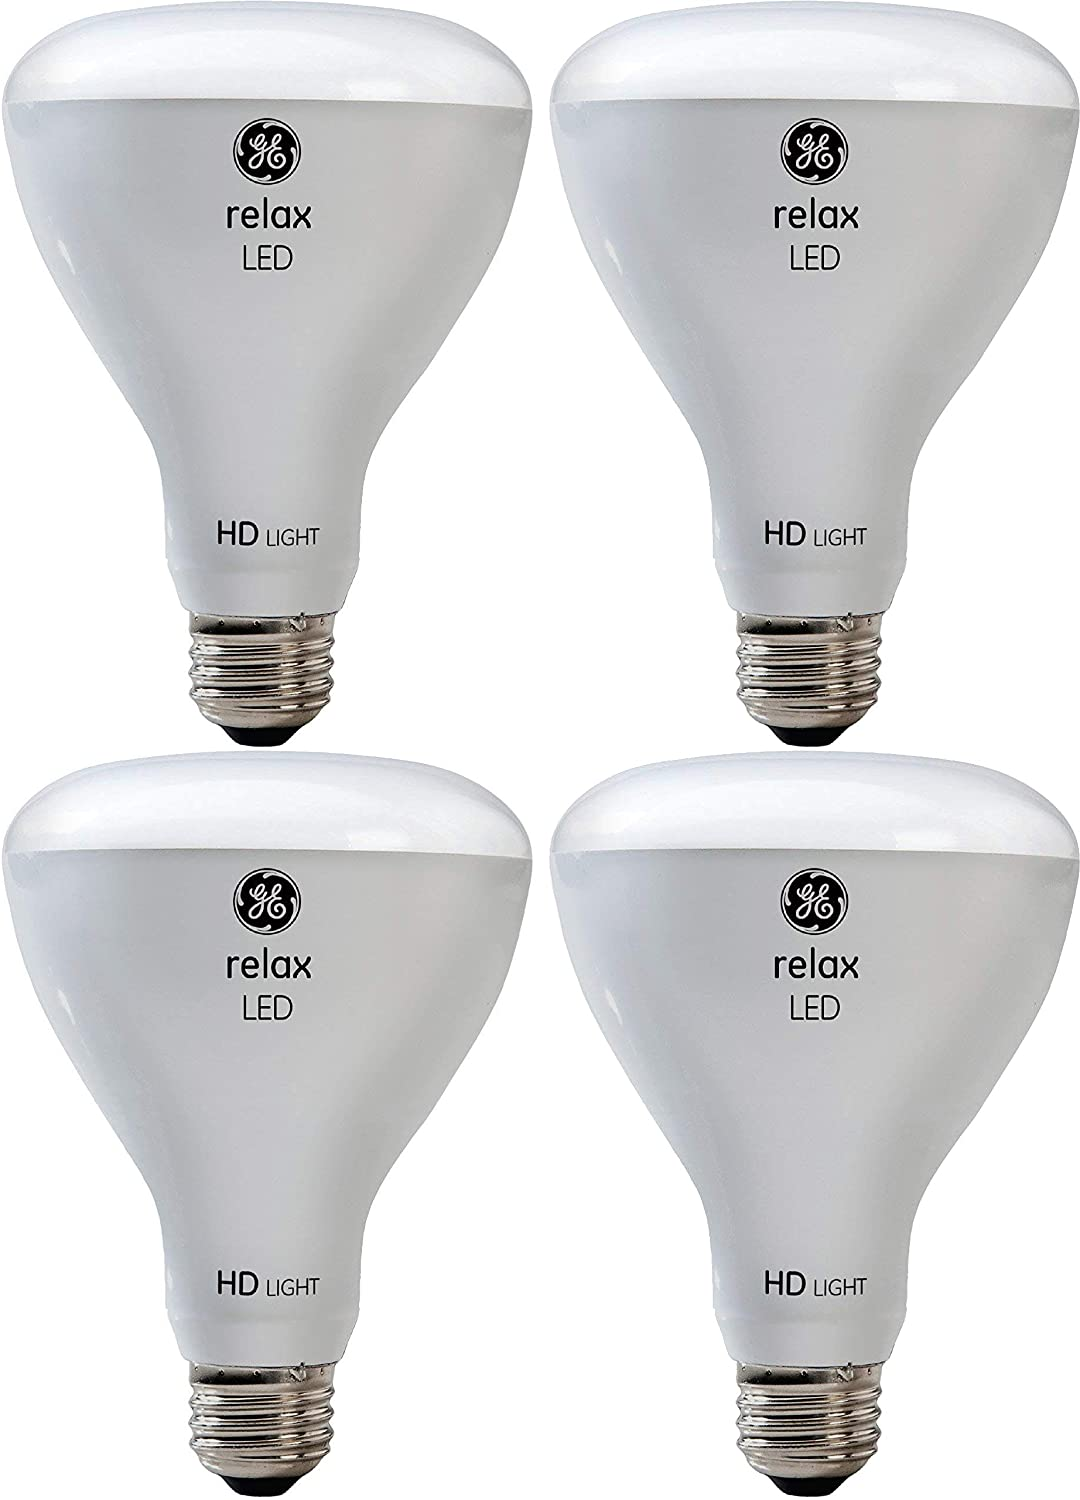 GE Lighting Relax HD LED Light Bulbs, 65W Replacement, BR30 LED Floodlight, 4-Pack, Soft White, Dimmable Flood Light Bulbs, Indoor, Medium Base